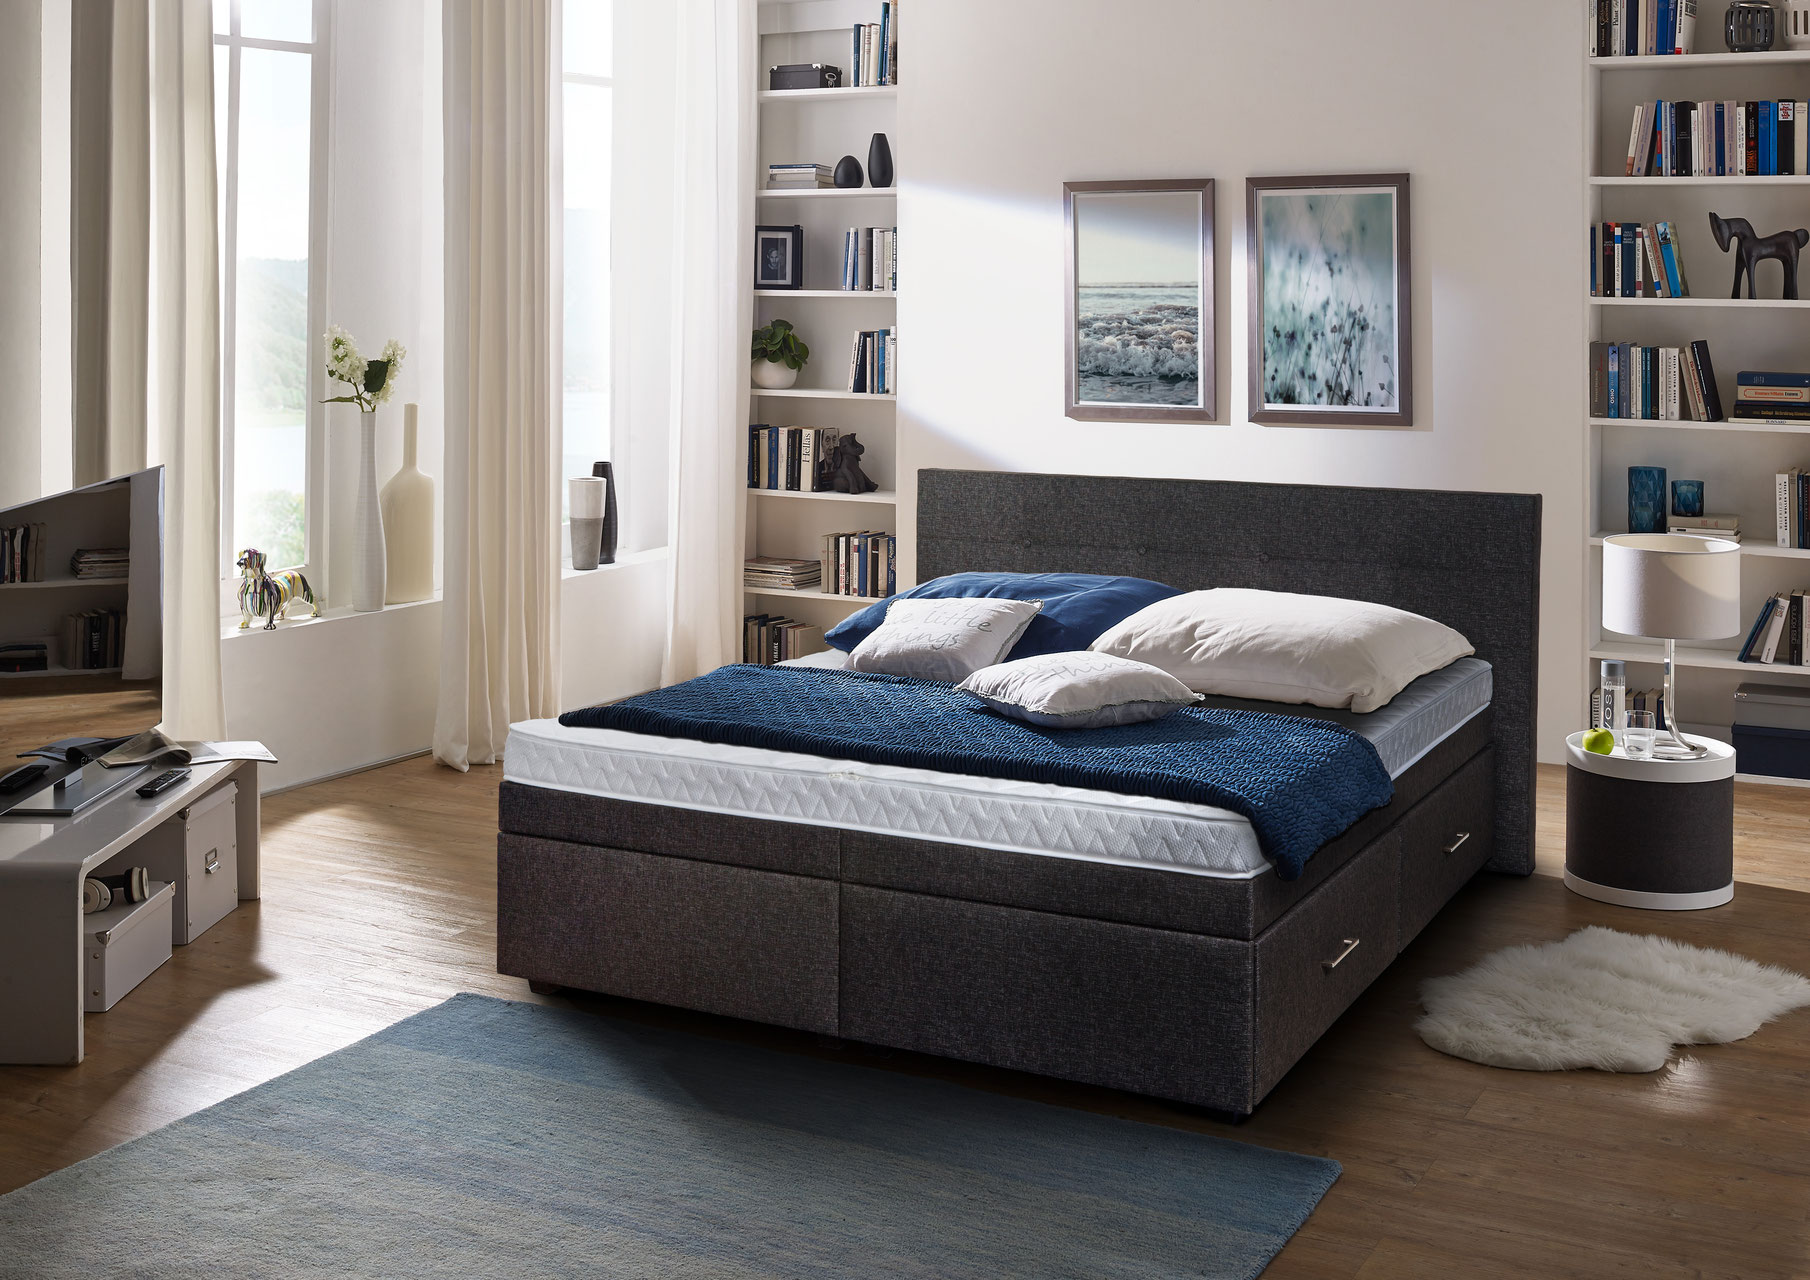 boxspring wasserbetten relax pool wasserbetten wien. Black Bedroom Furniture Sets. Home Design Ideas